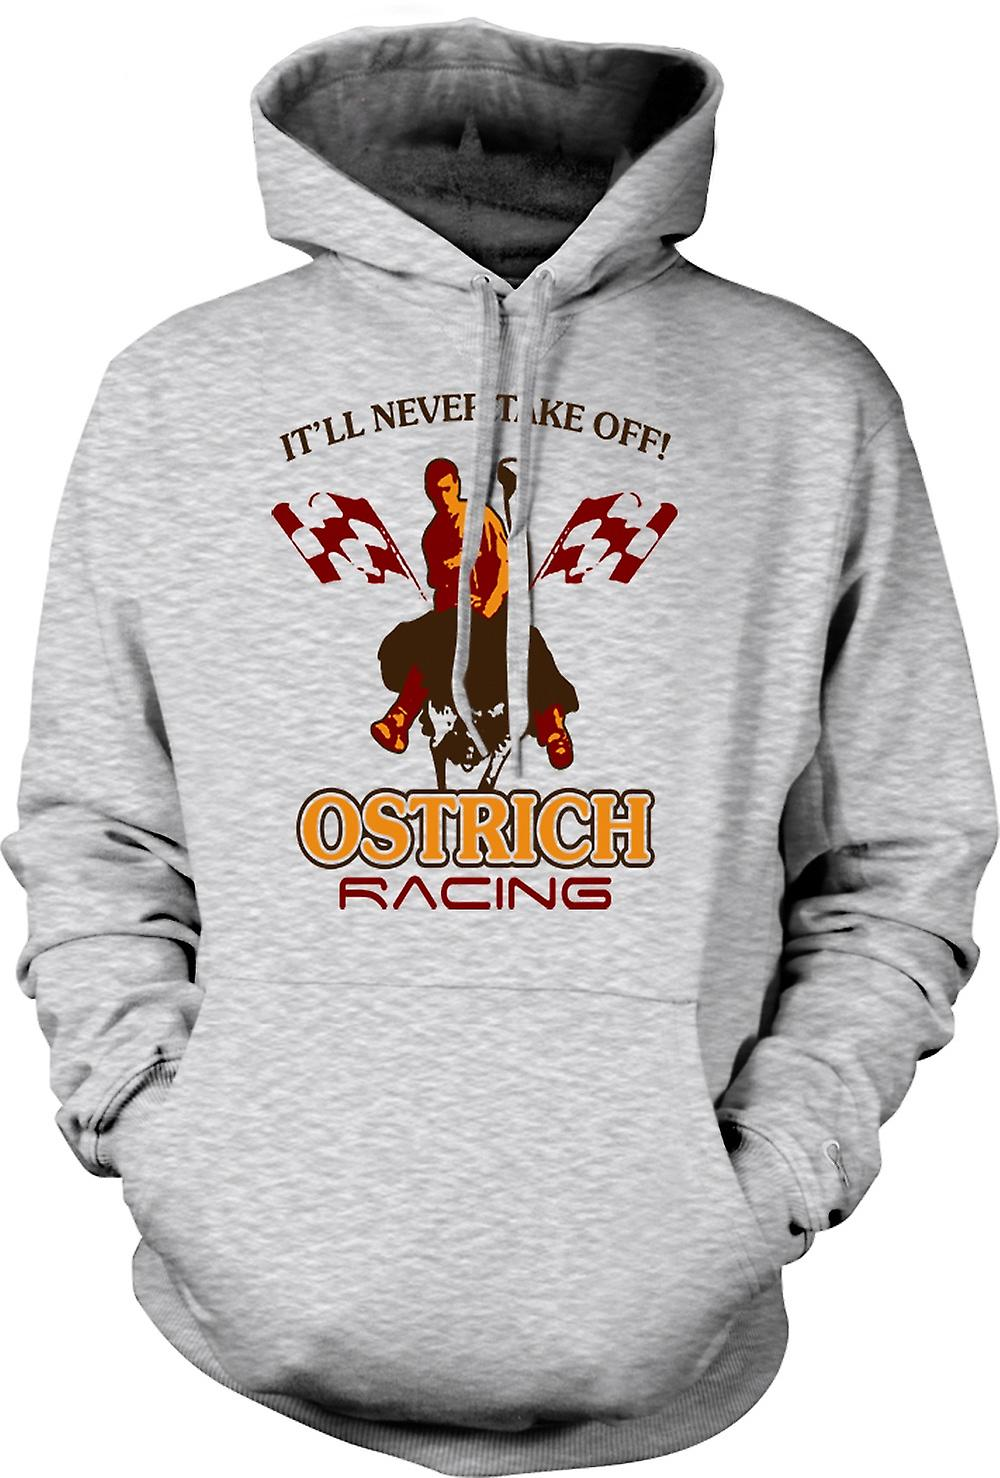 Mens Hoodie - Ostrich Racing Never Take Off - Funny